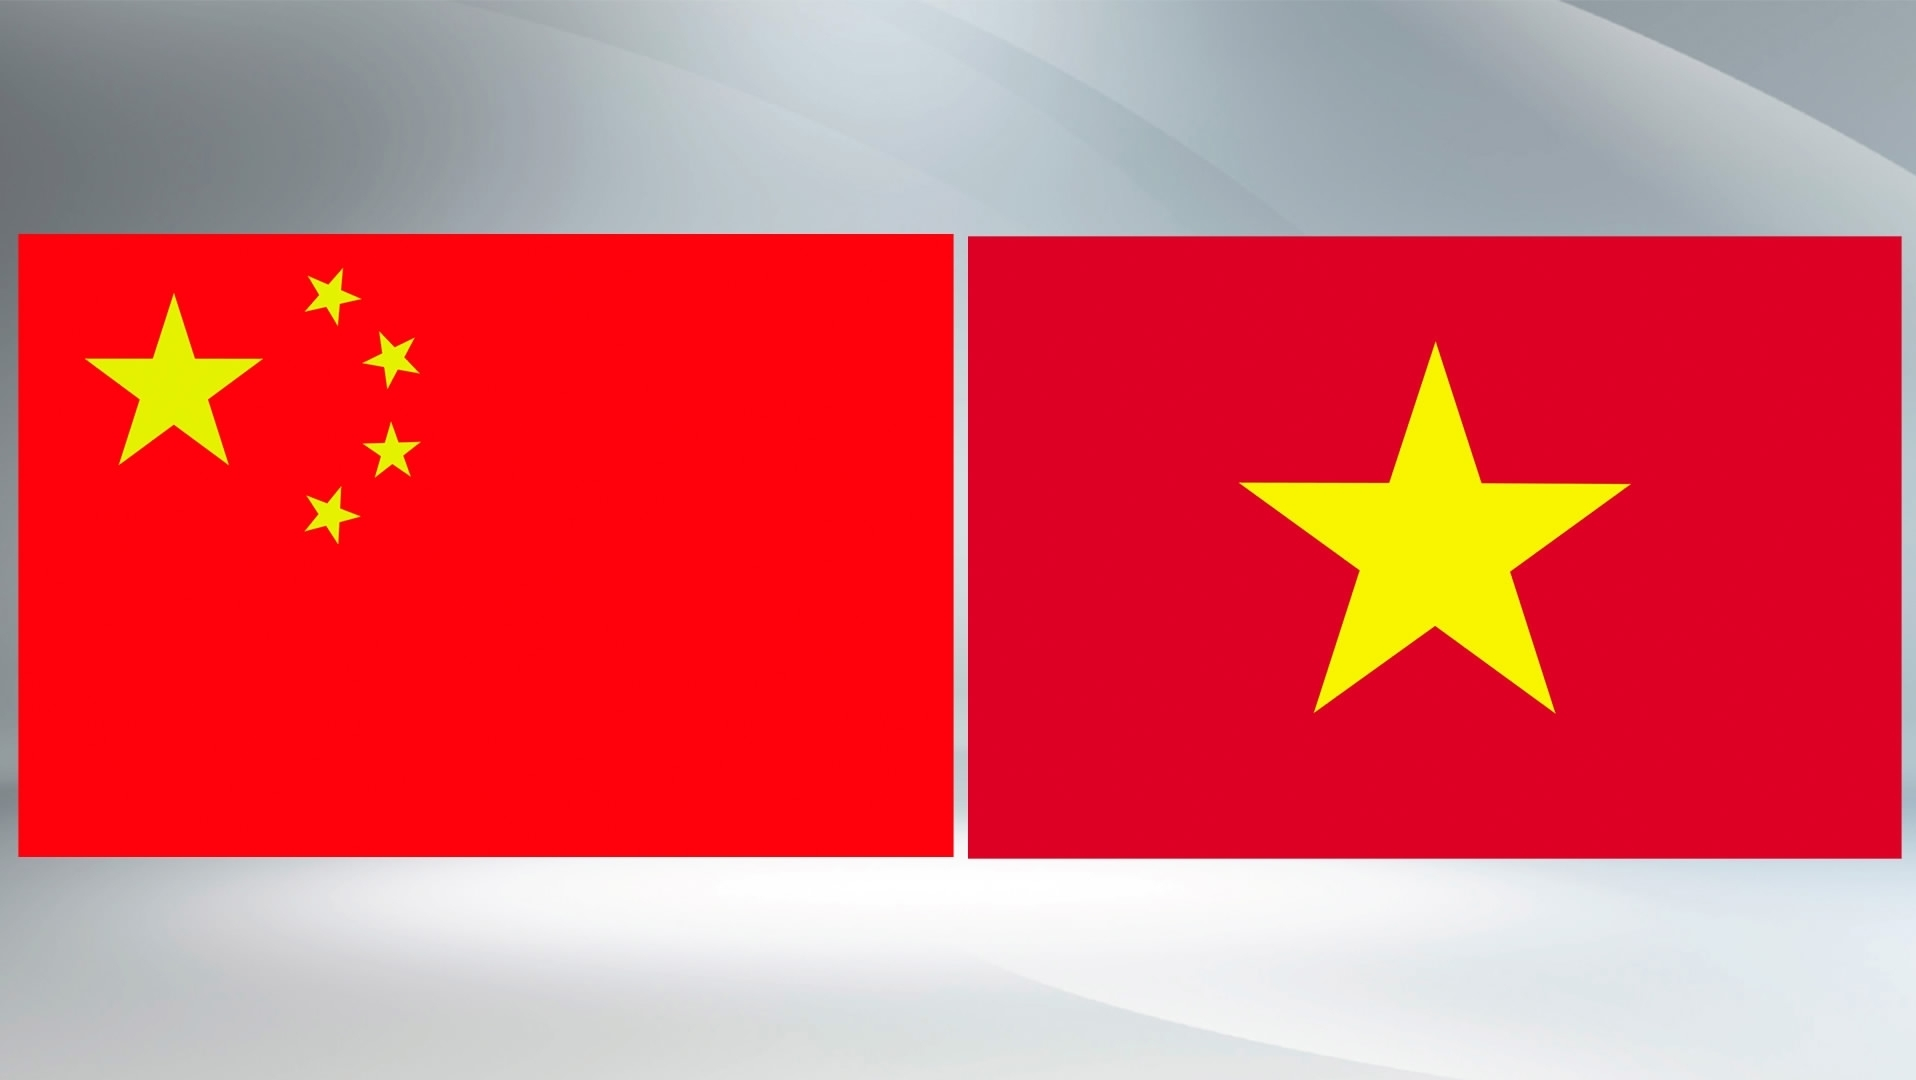 Conducting in-depth researches and exchanges to deepen Vietnam-China relations